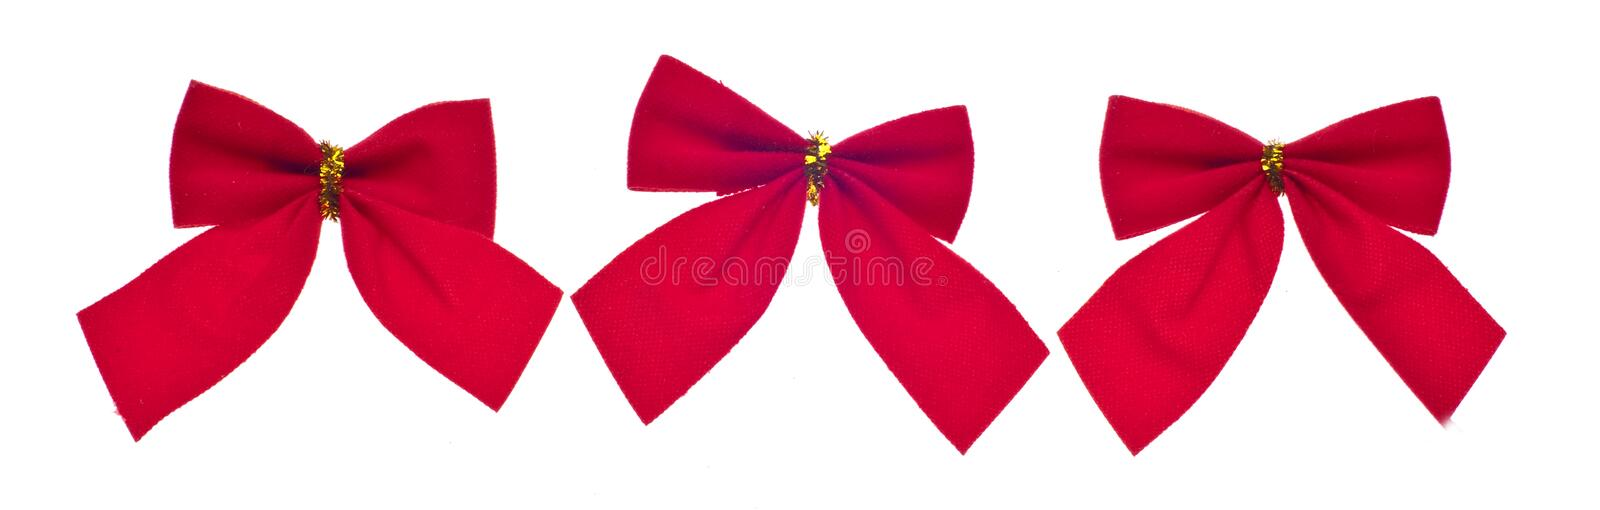 Download Festive Red Holiday Bows stock image. Image of celebration - 16459177